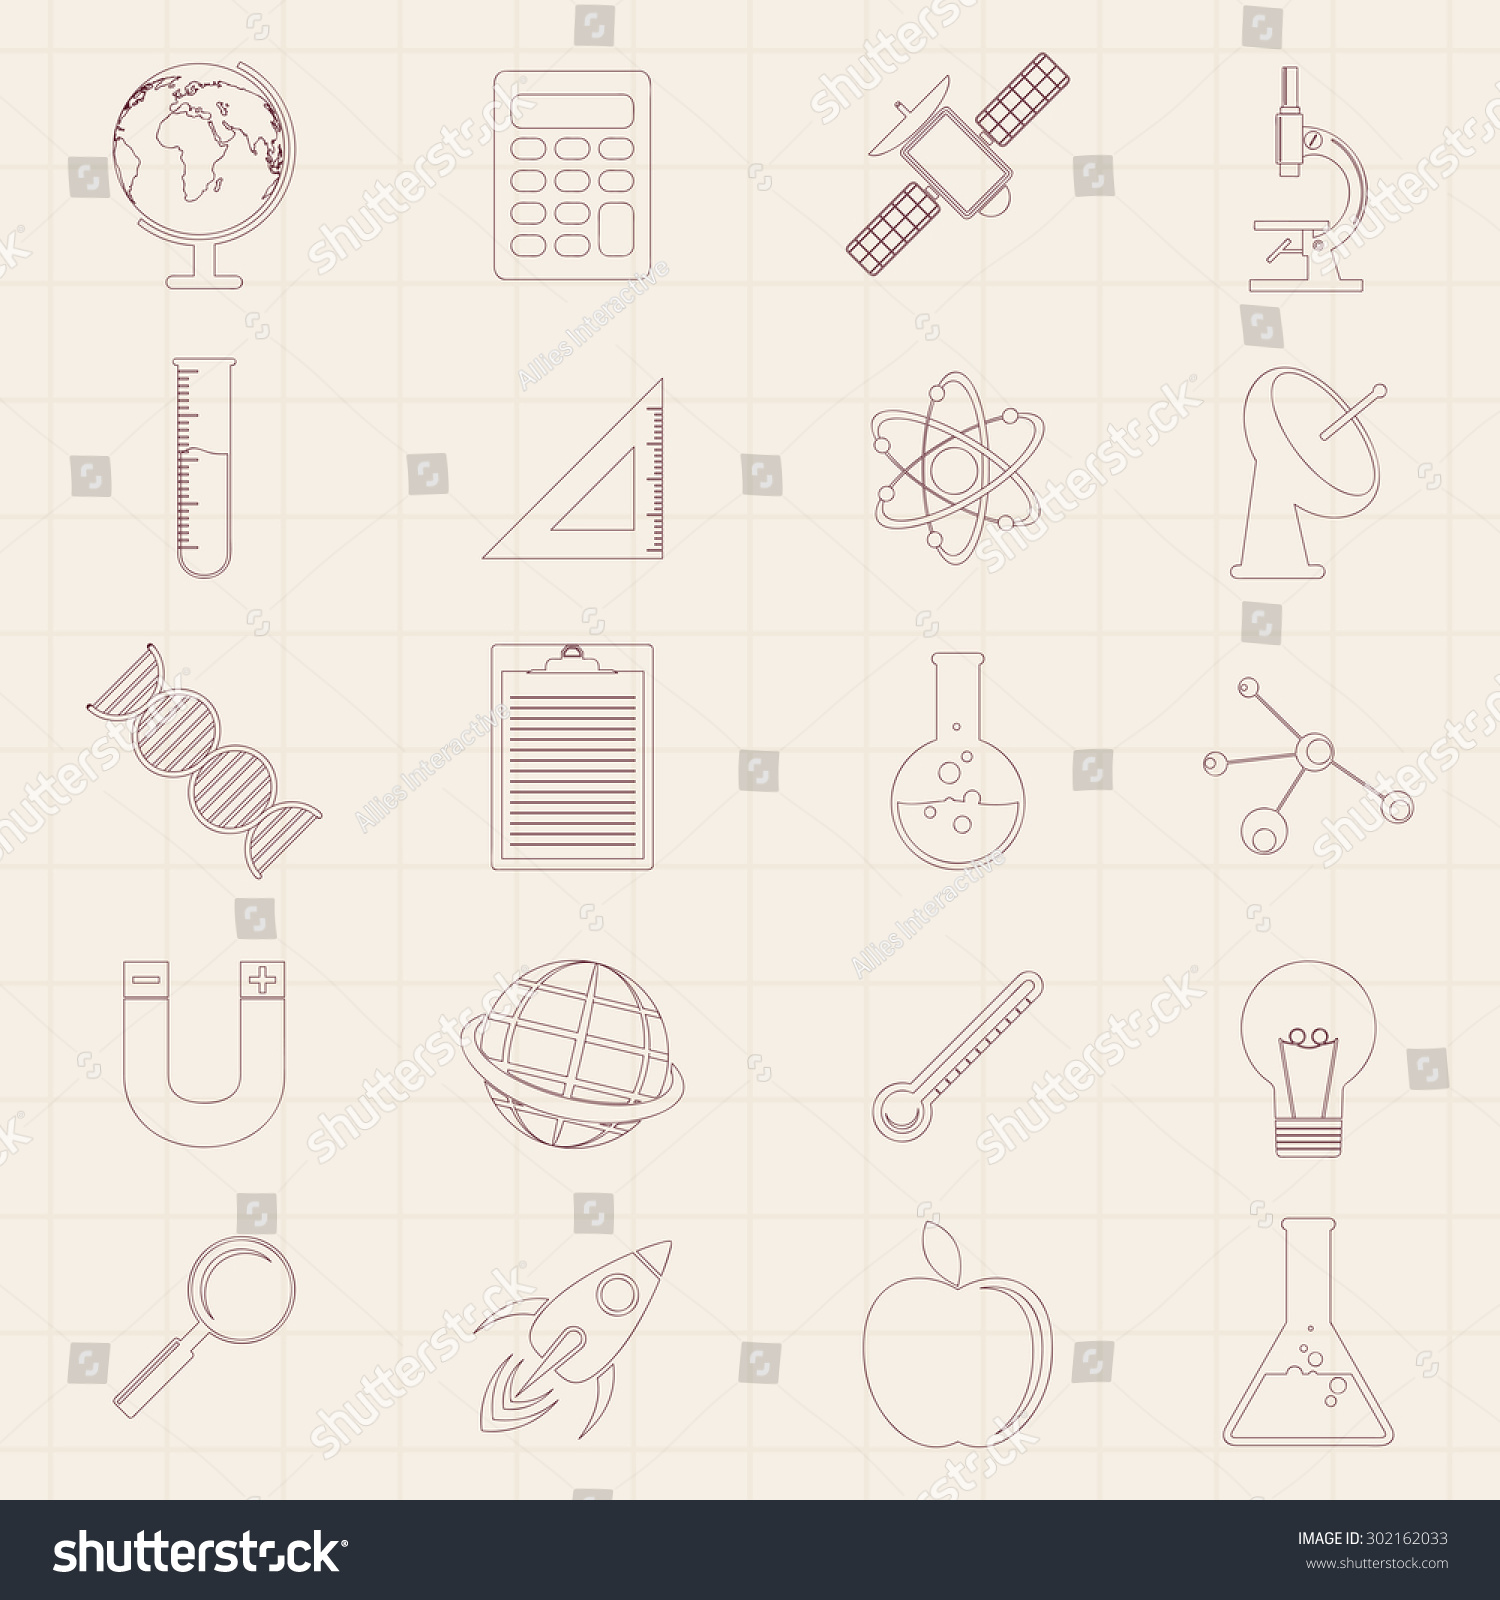 set various signs symbols on graph stock vector royalty free